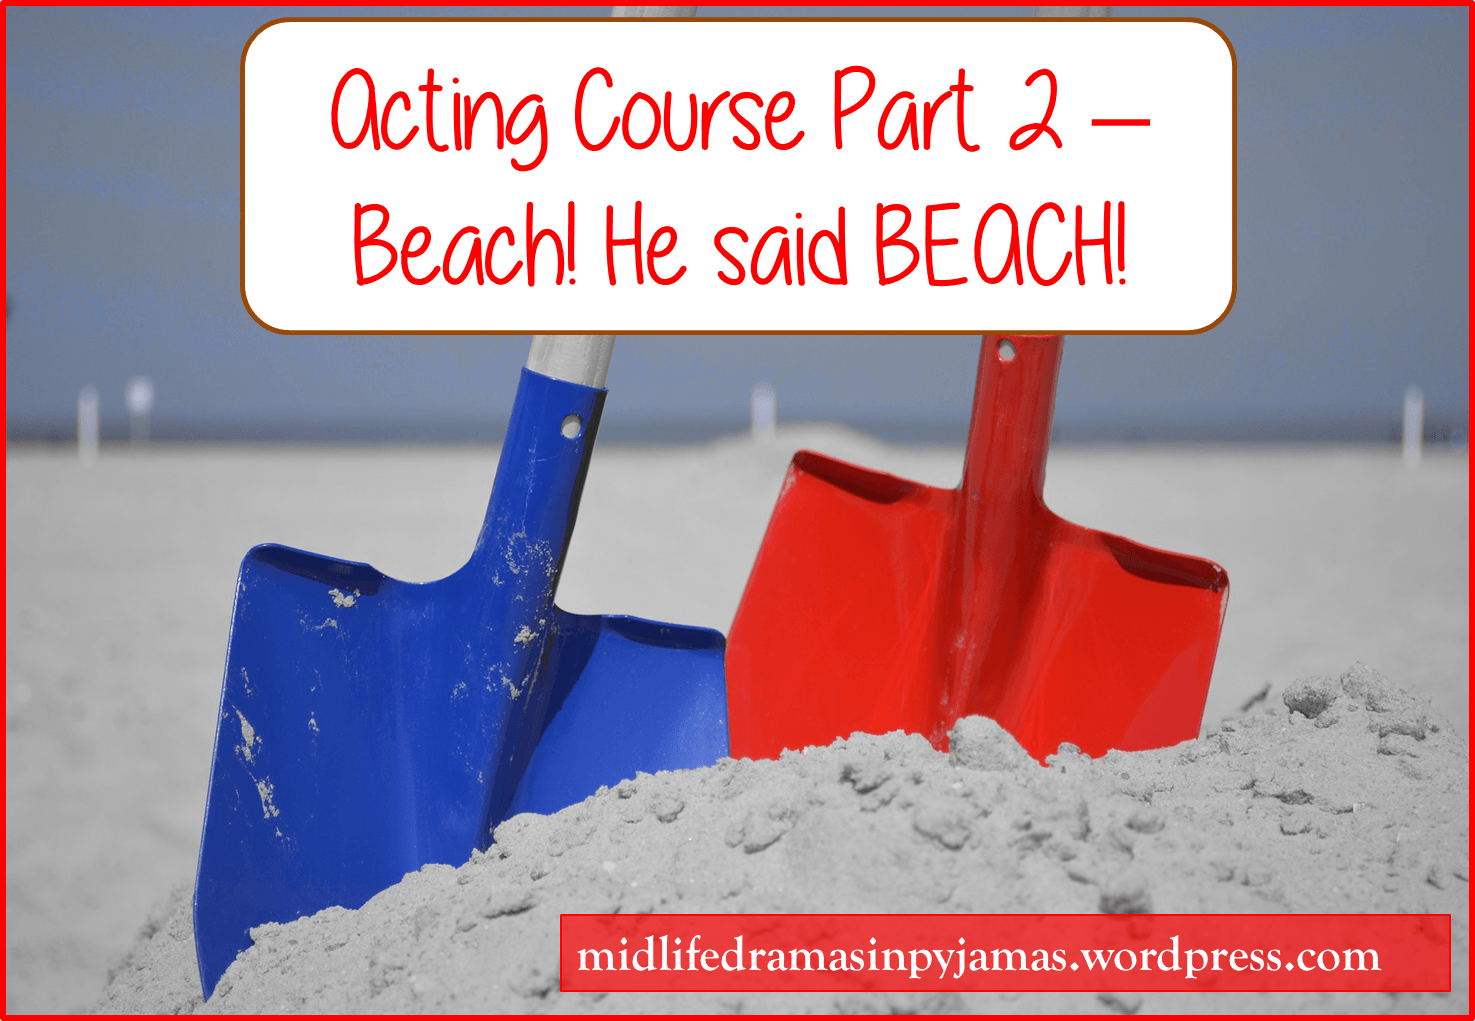 A funny blog post about the second session on an acting course, from Midlife Dramas in Pyjamas